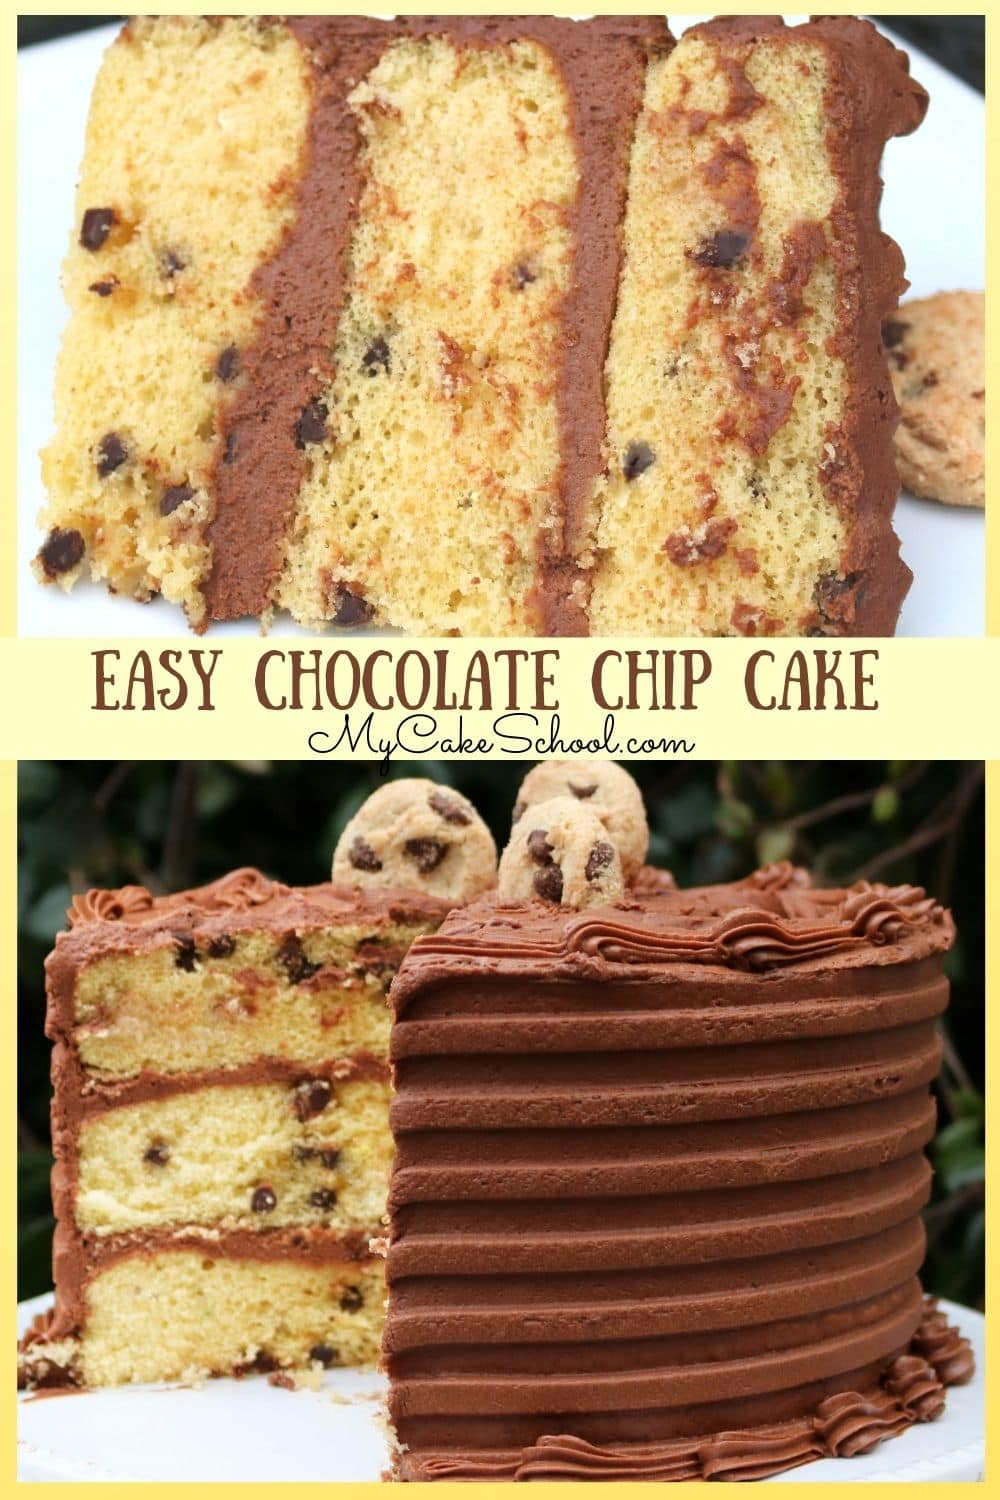 Easy Chocolate Chip Cake- Doctored Cake Mix